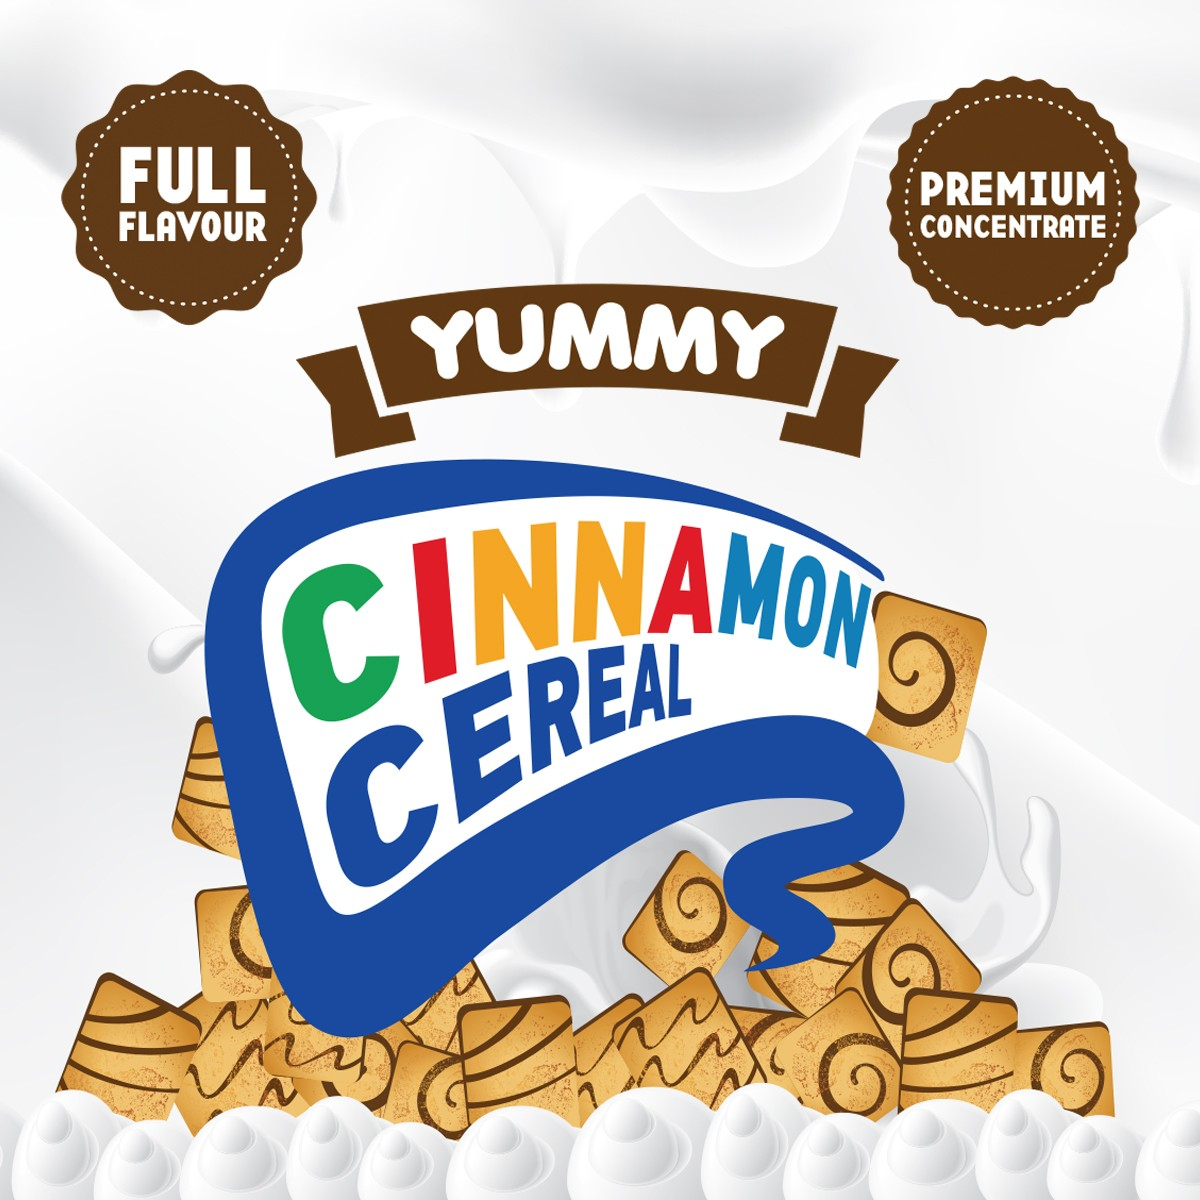 cinamon-cereal-aroma-big-mouth-bei-vapedoo-kaufen